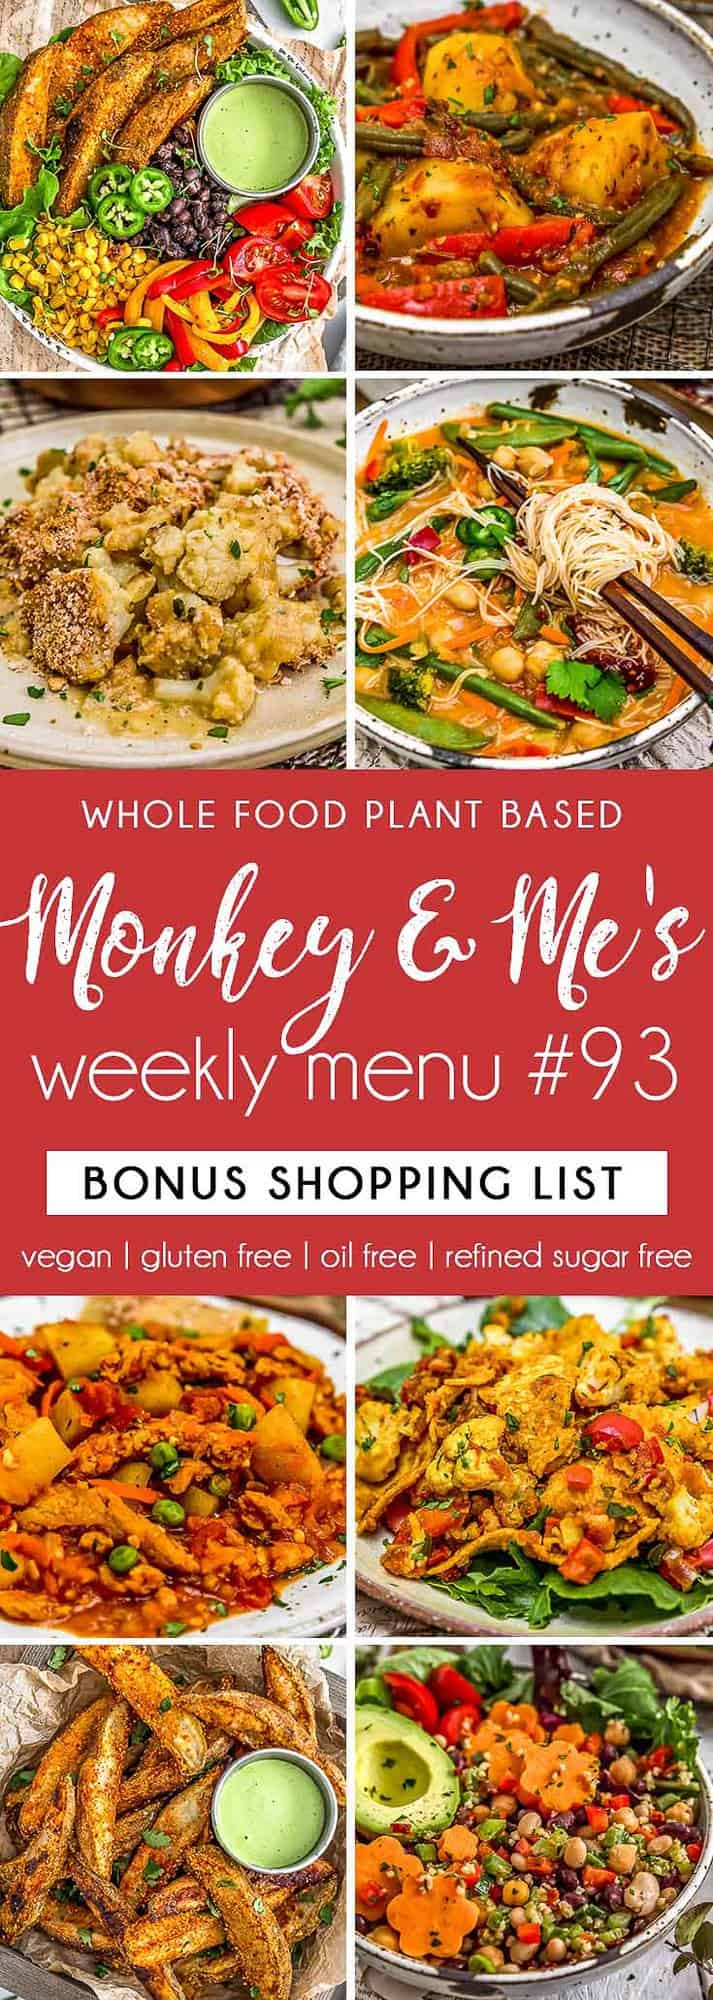 Monkey and Me's Menu 93 featuring 8 recipes